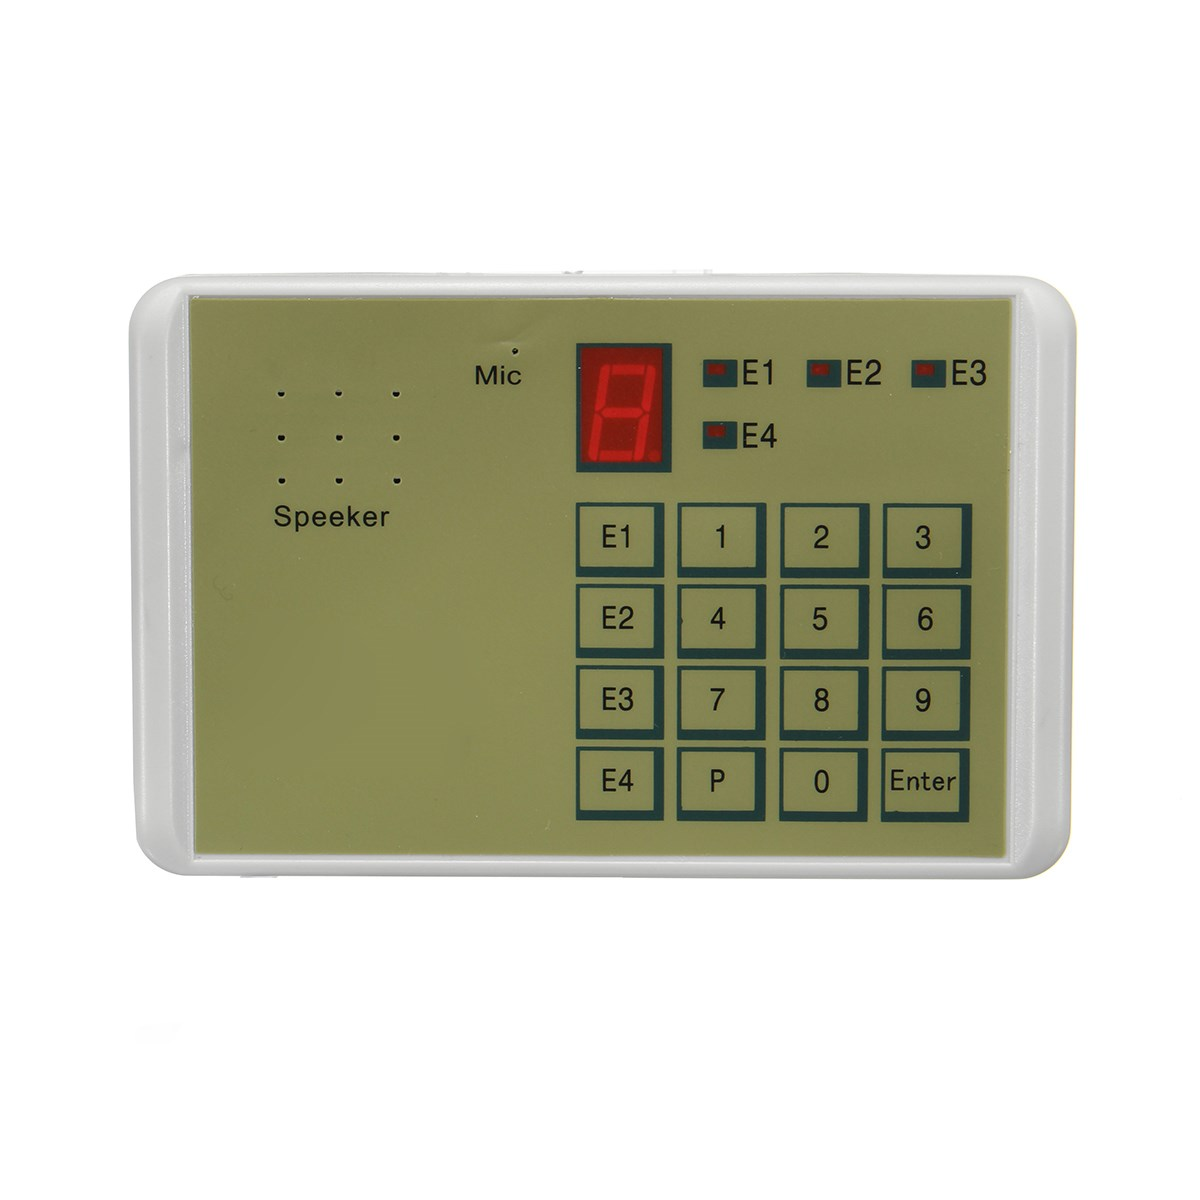 NEW Telephone Voice Dialing Automatic Alarm Dialer Alarm Host Dialer Wired Voice Auto-dialer Burglar Security House System